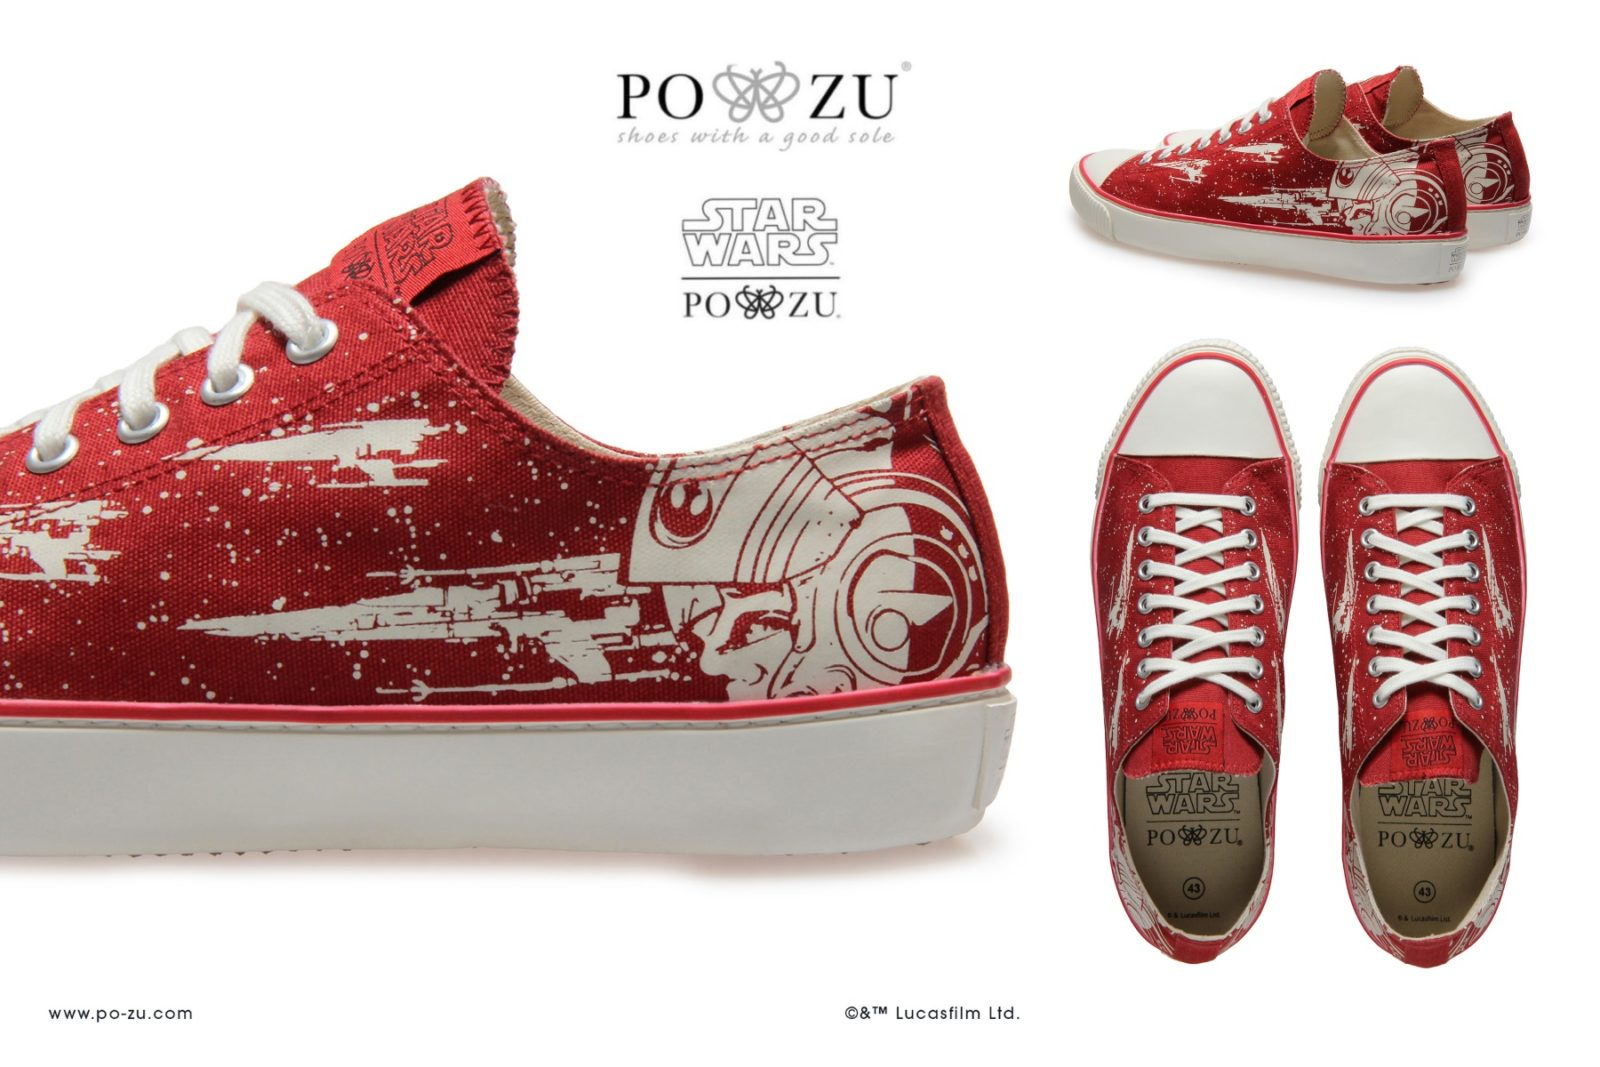 New Po-Zu Red X-Wing Women's Sneakers!